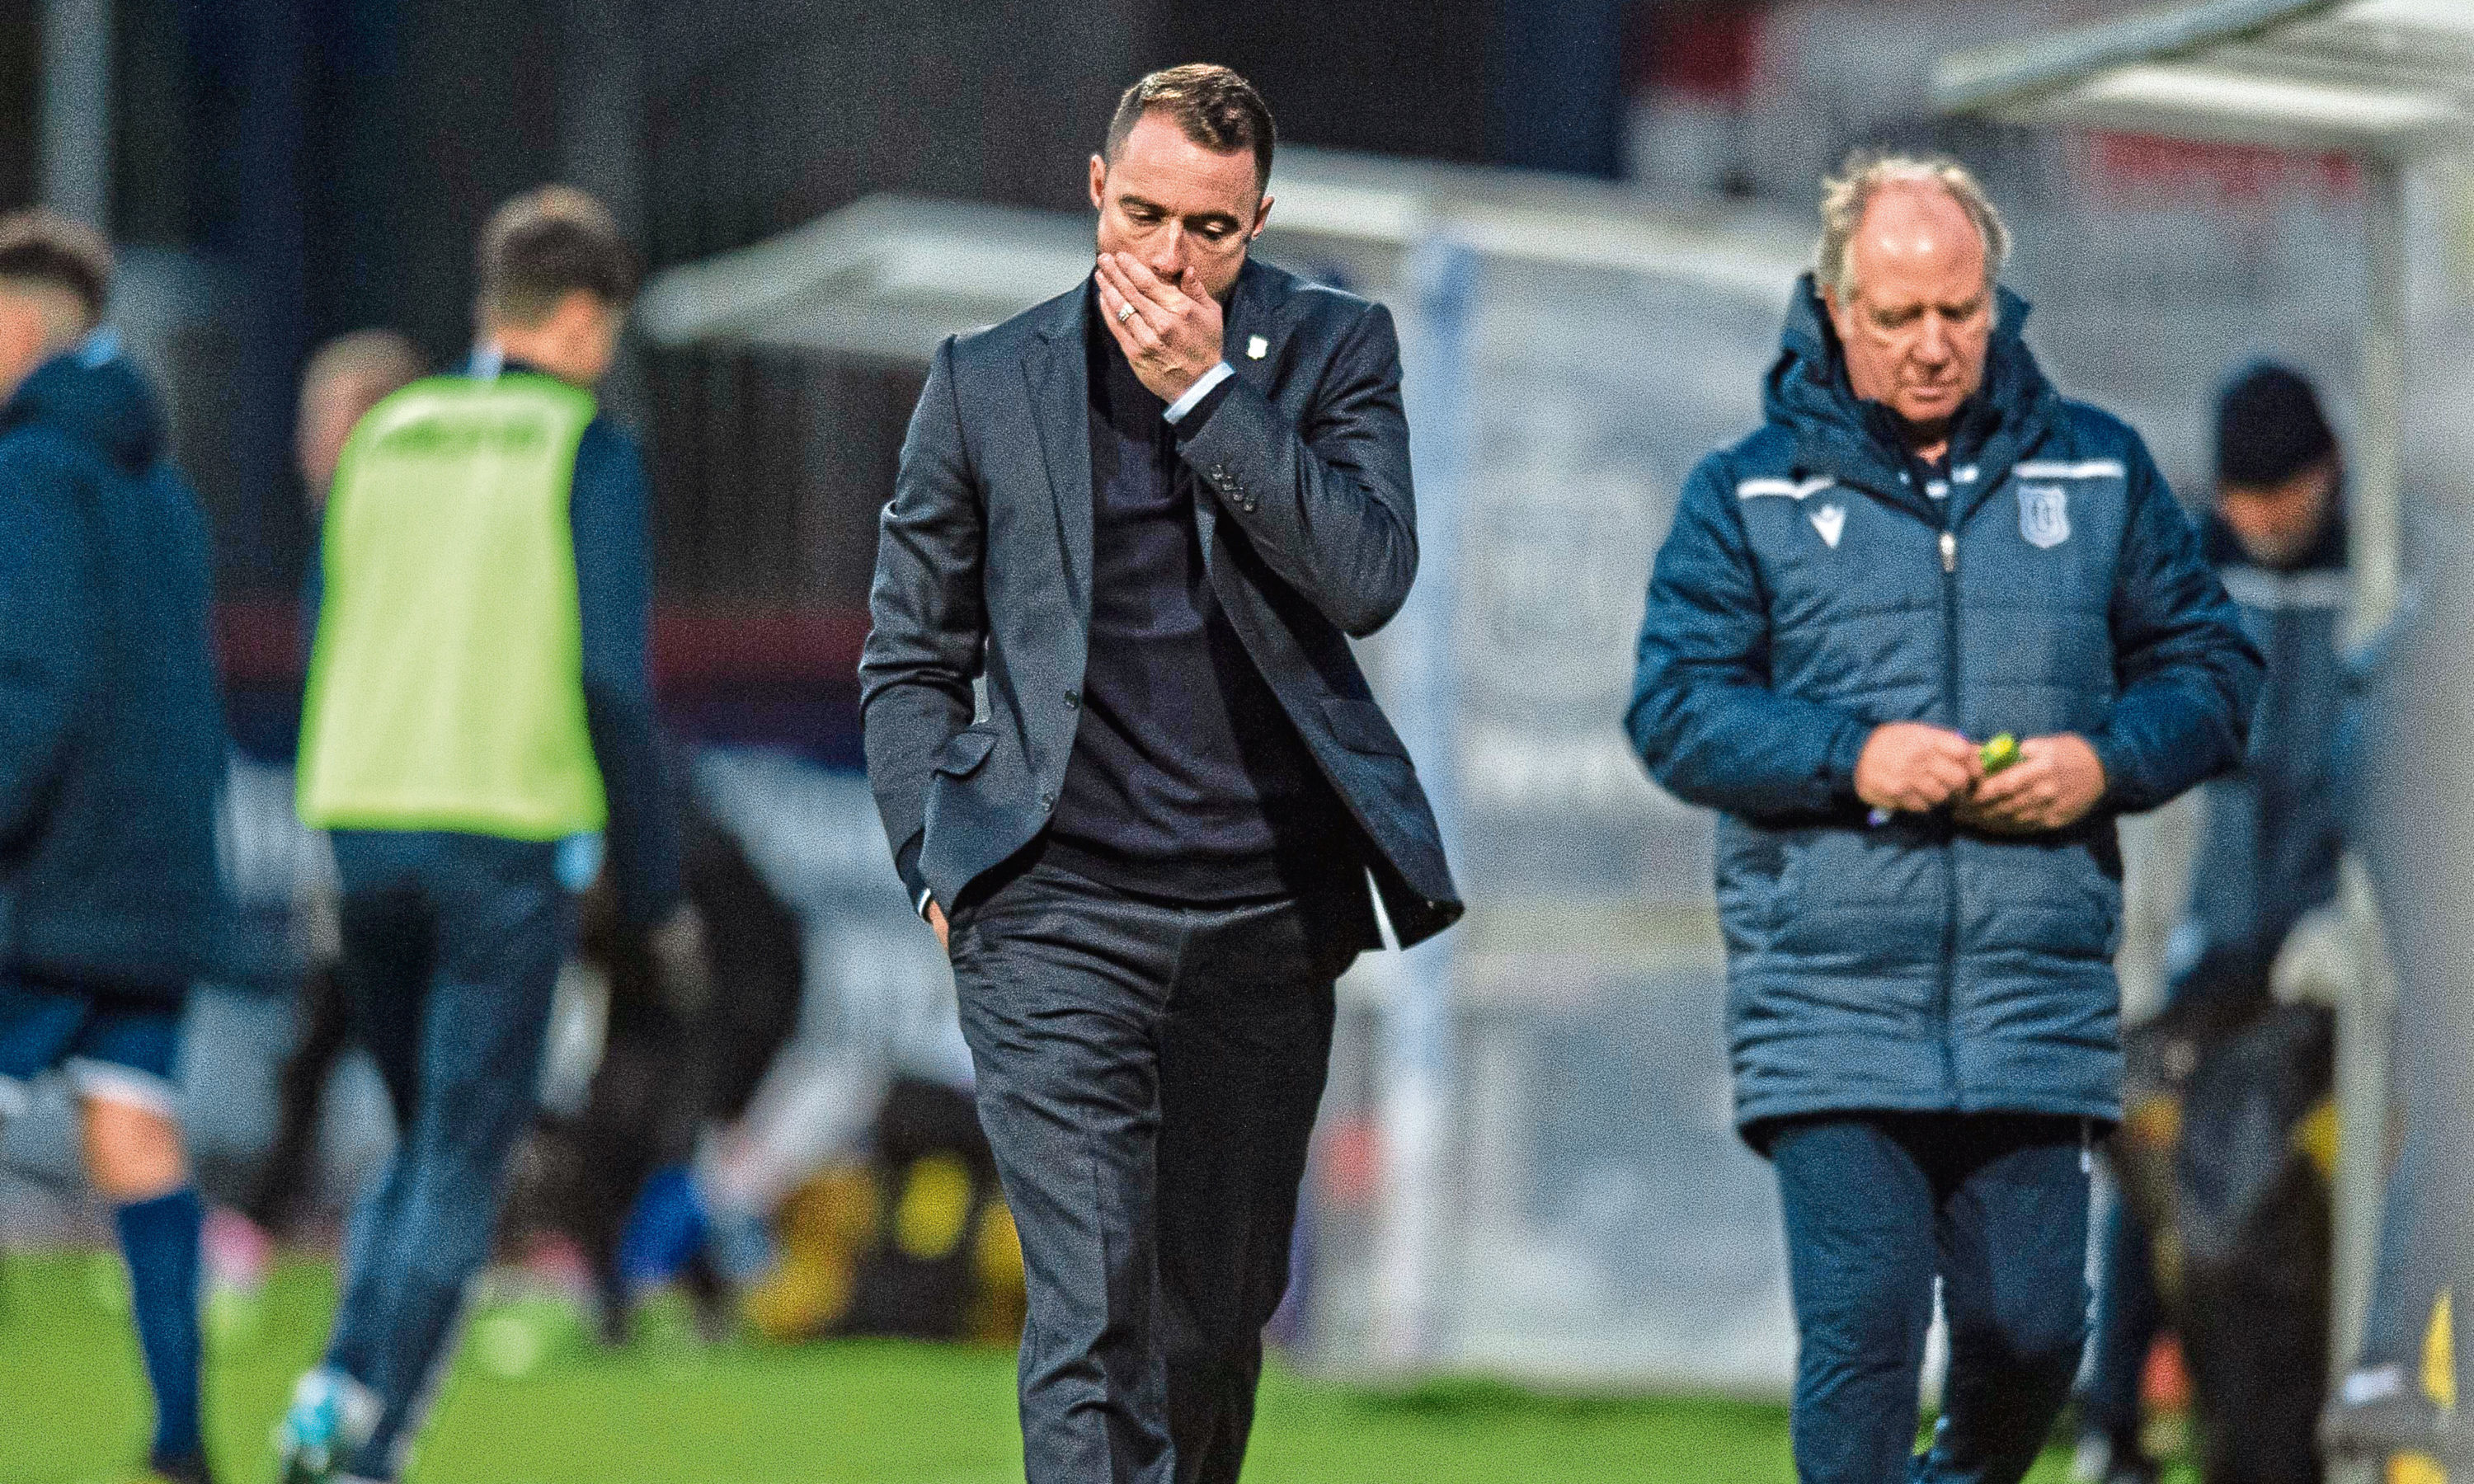 James McPake cuts a forlorn figure at half-time at Dens Park on Saturday.